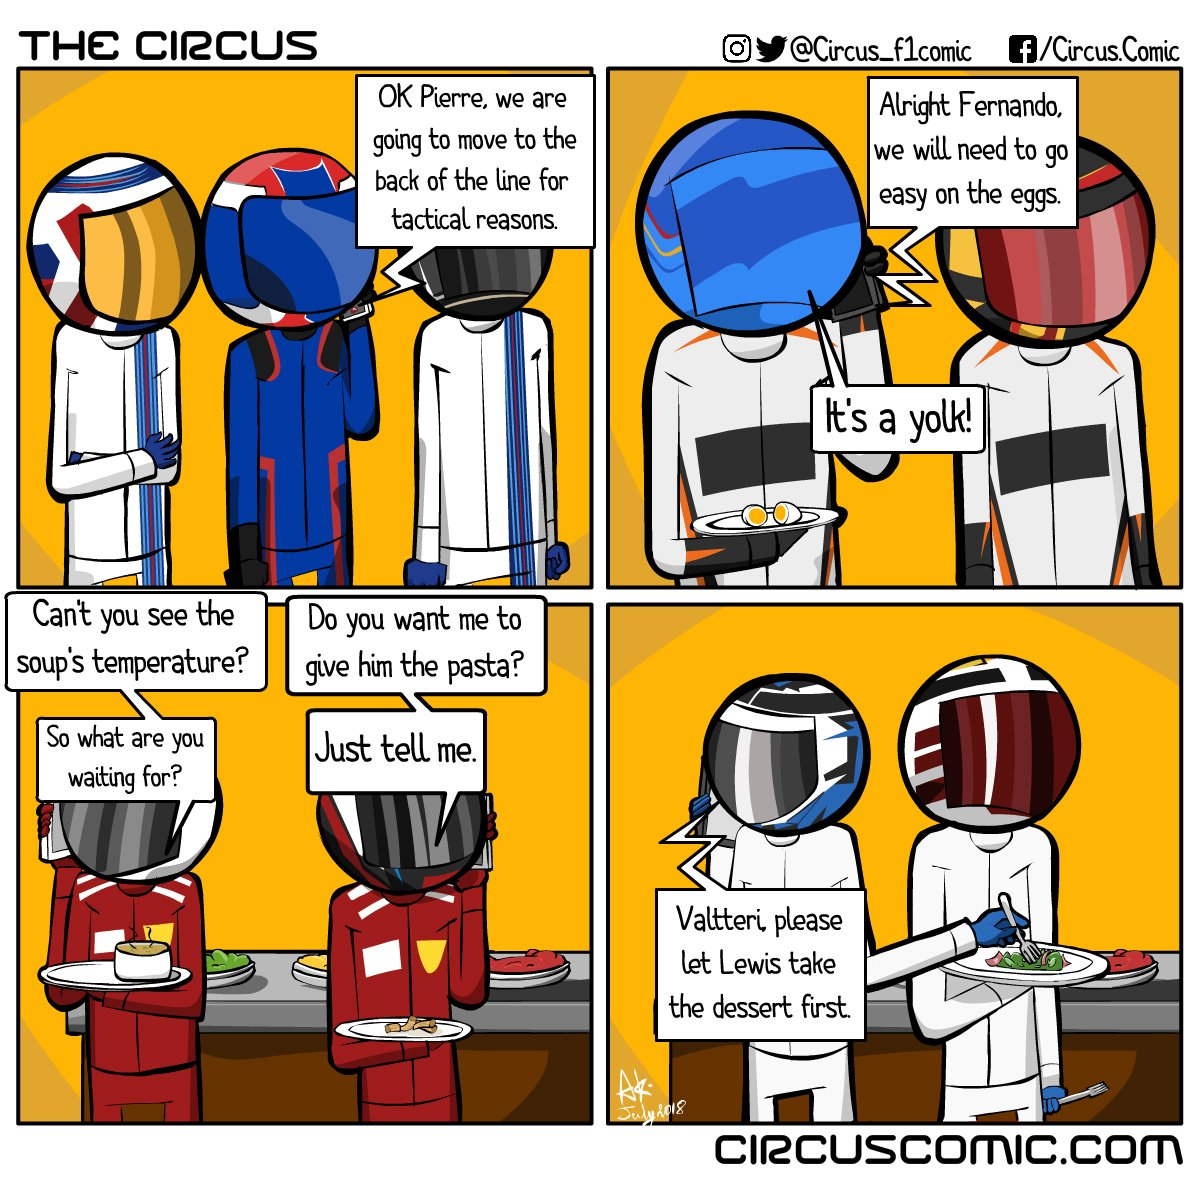 The epic epic 2018 #GermandGrandPrix was held #OnThisDay. Throwback to the comic from last year, following the insane turn of events in the race. #Vettel #Lewis #Kimi #Formula1 #F1